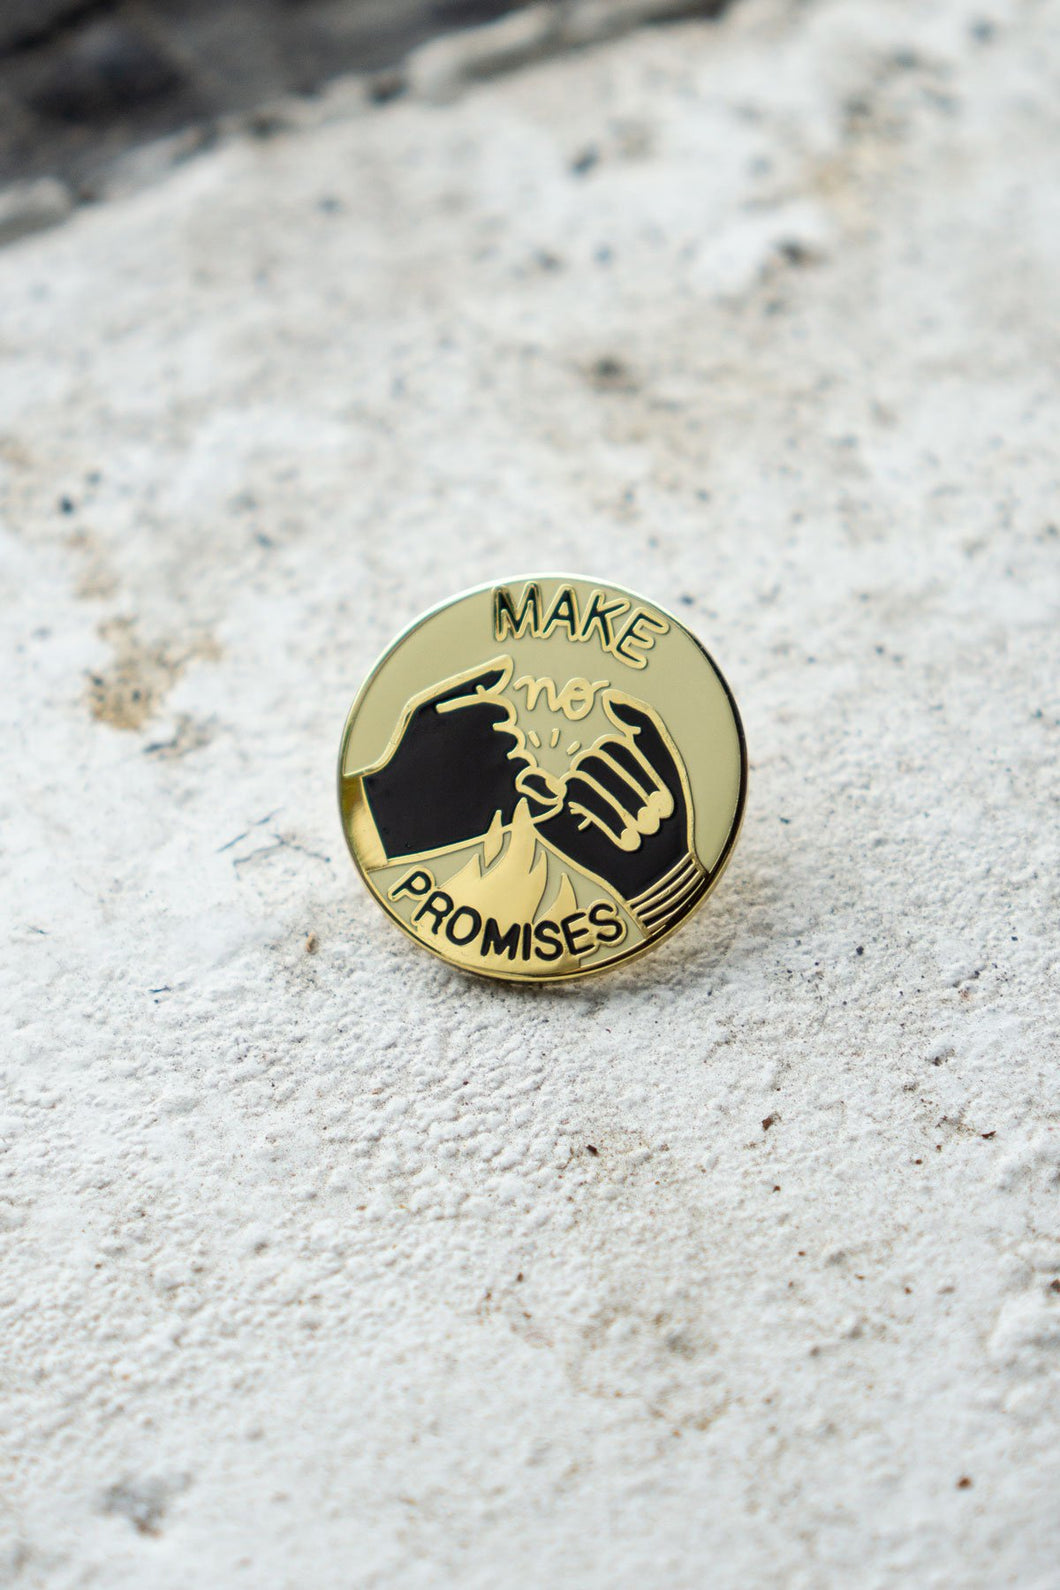 Stay Home Club Make No Promises Enamel Pin from Indie Edinburgh